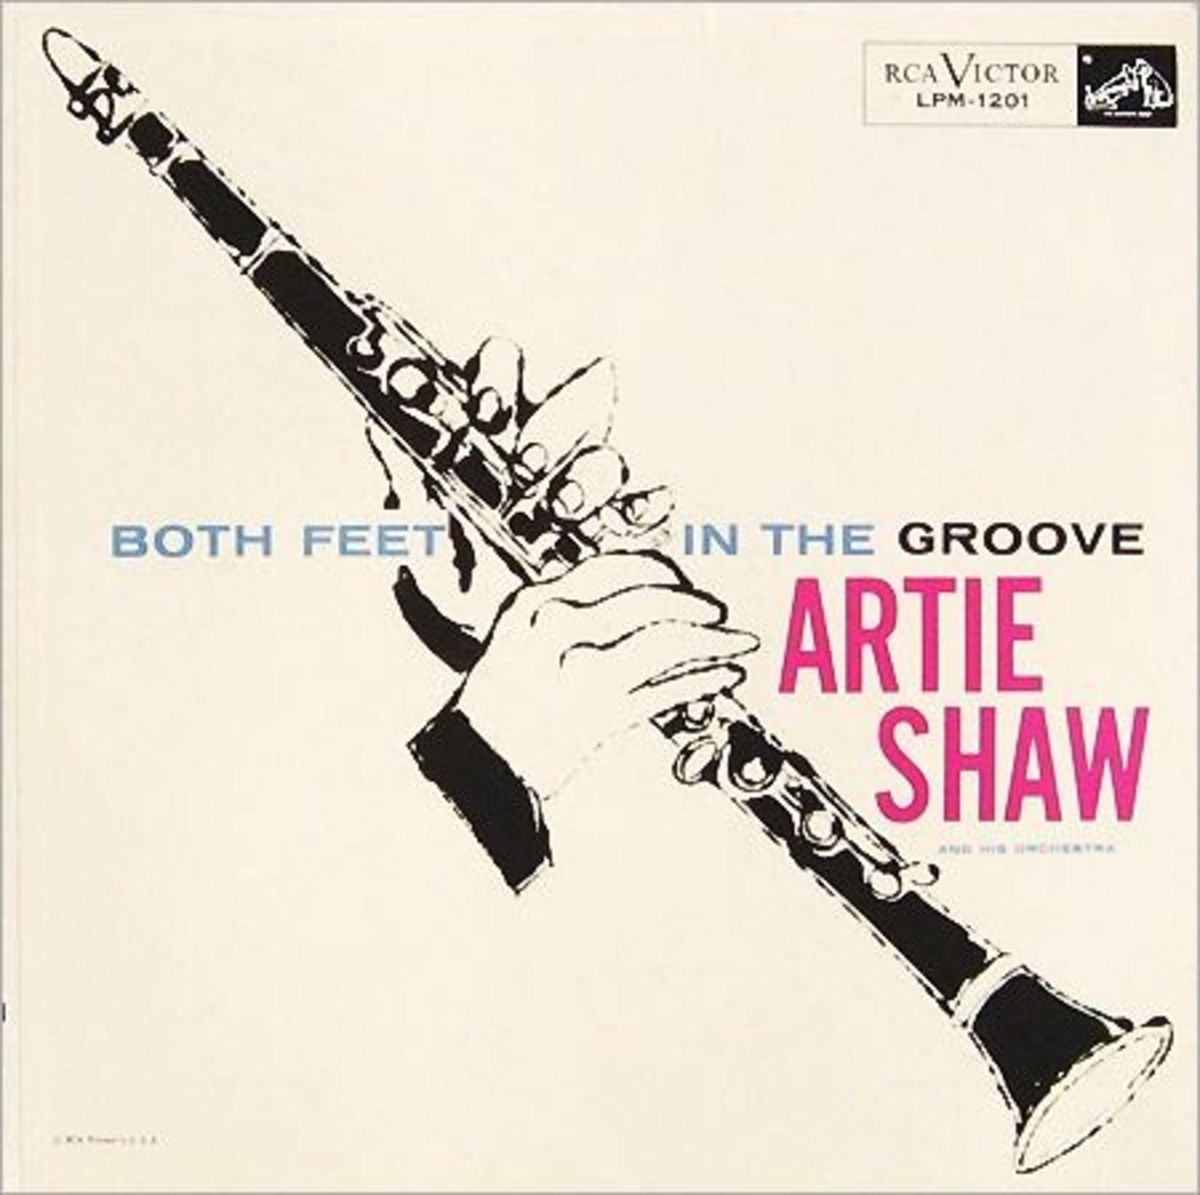 "Artie Shaw ""Both Feet In The Groove"" RCA Victor 1201 12"" LP Vinyl Record, Album Cover Illustrations by Andy Warhol"